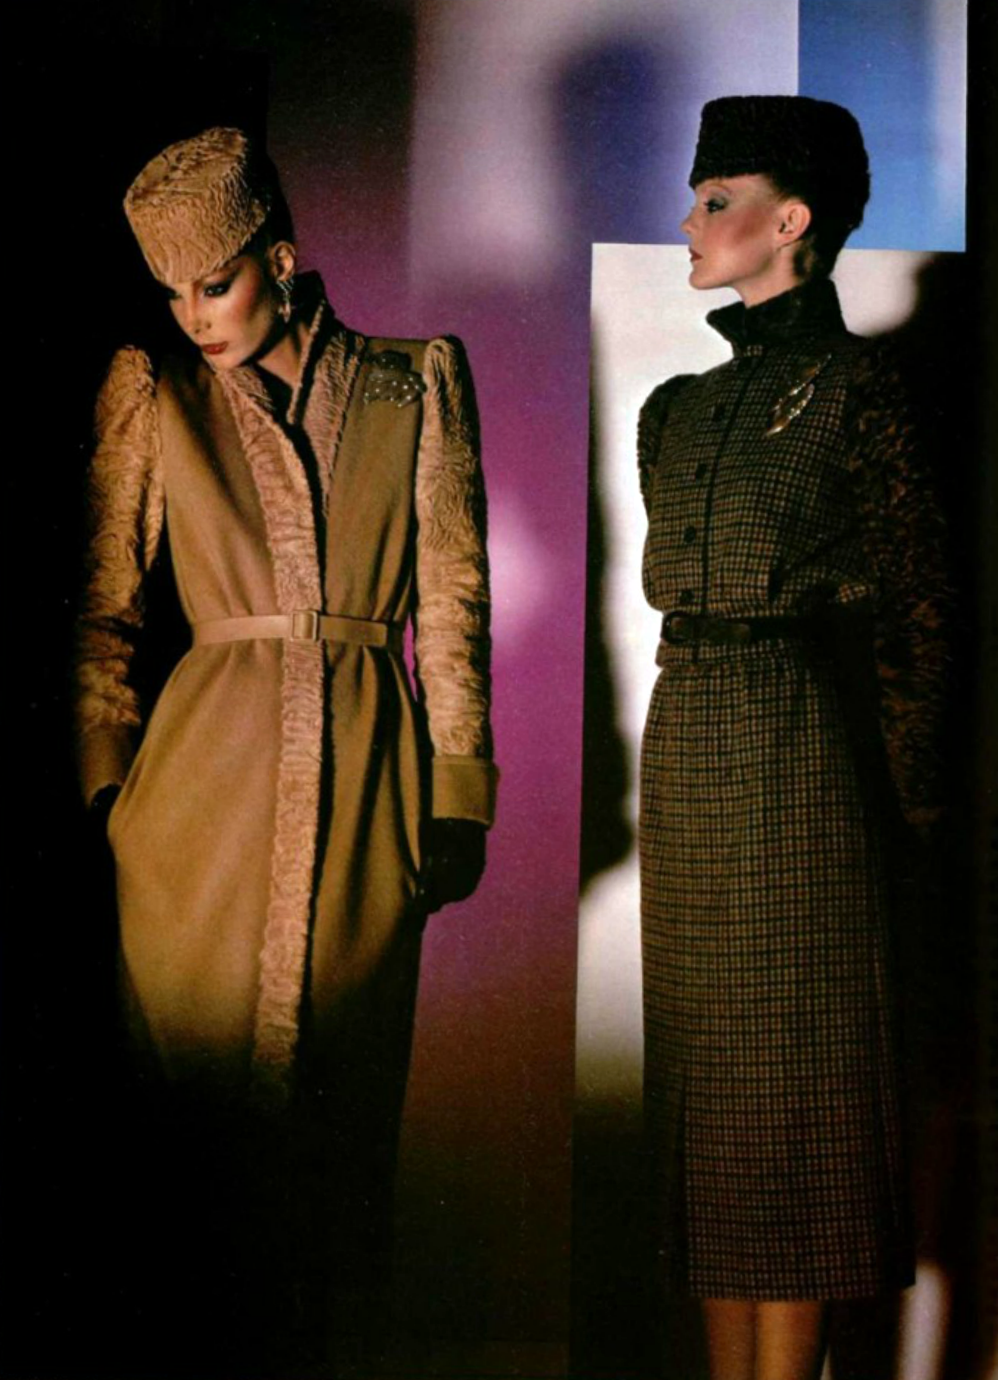 J.L. Scherrer. L'Officiel magazine 1979